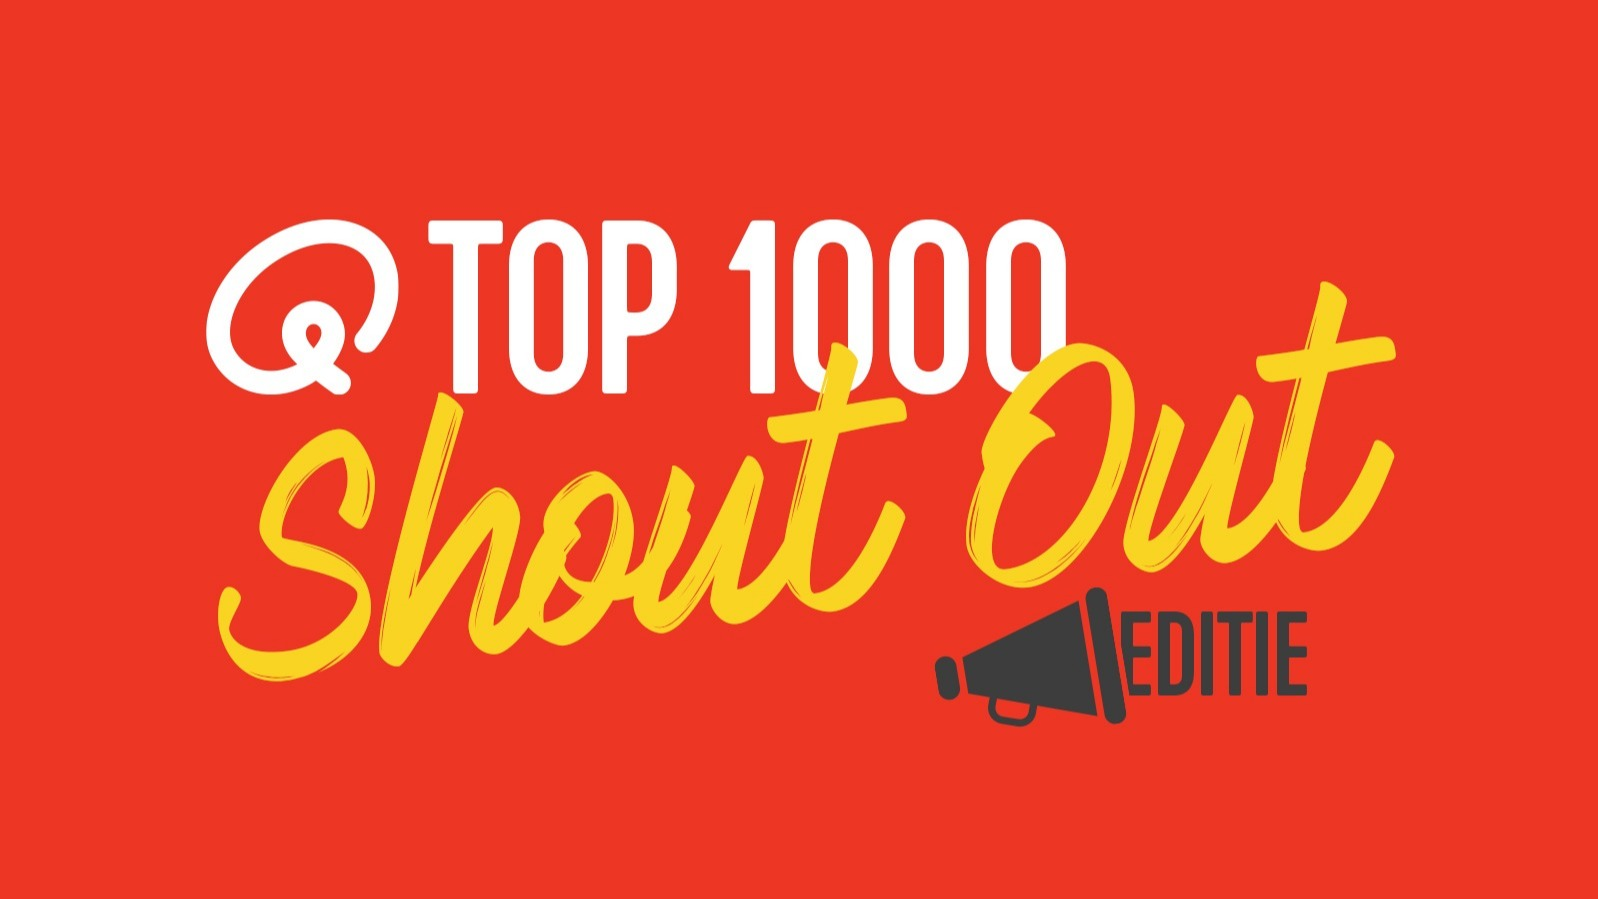 Top1000 shout out rood